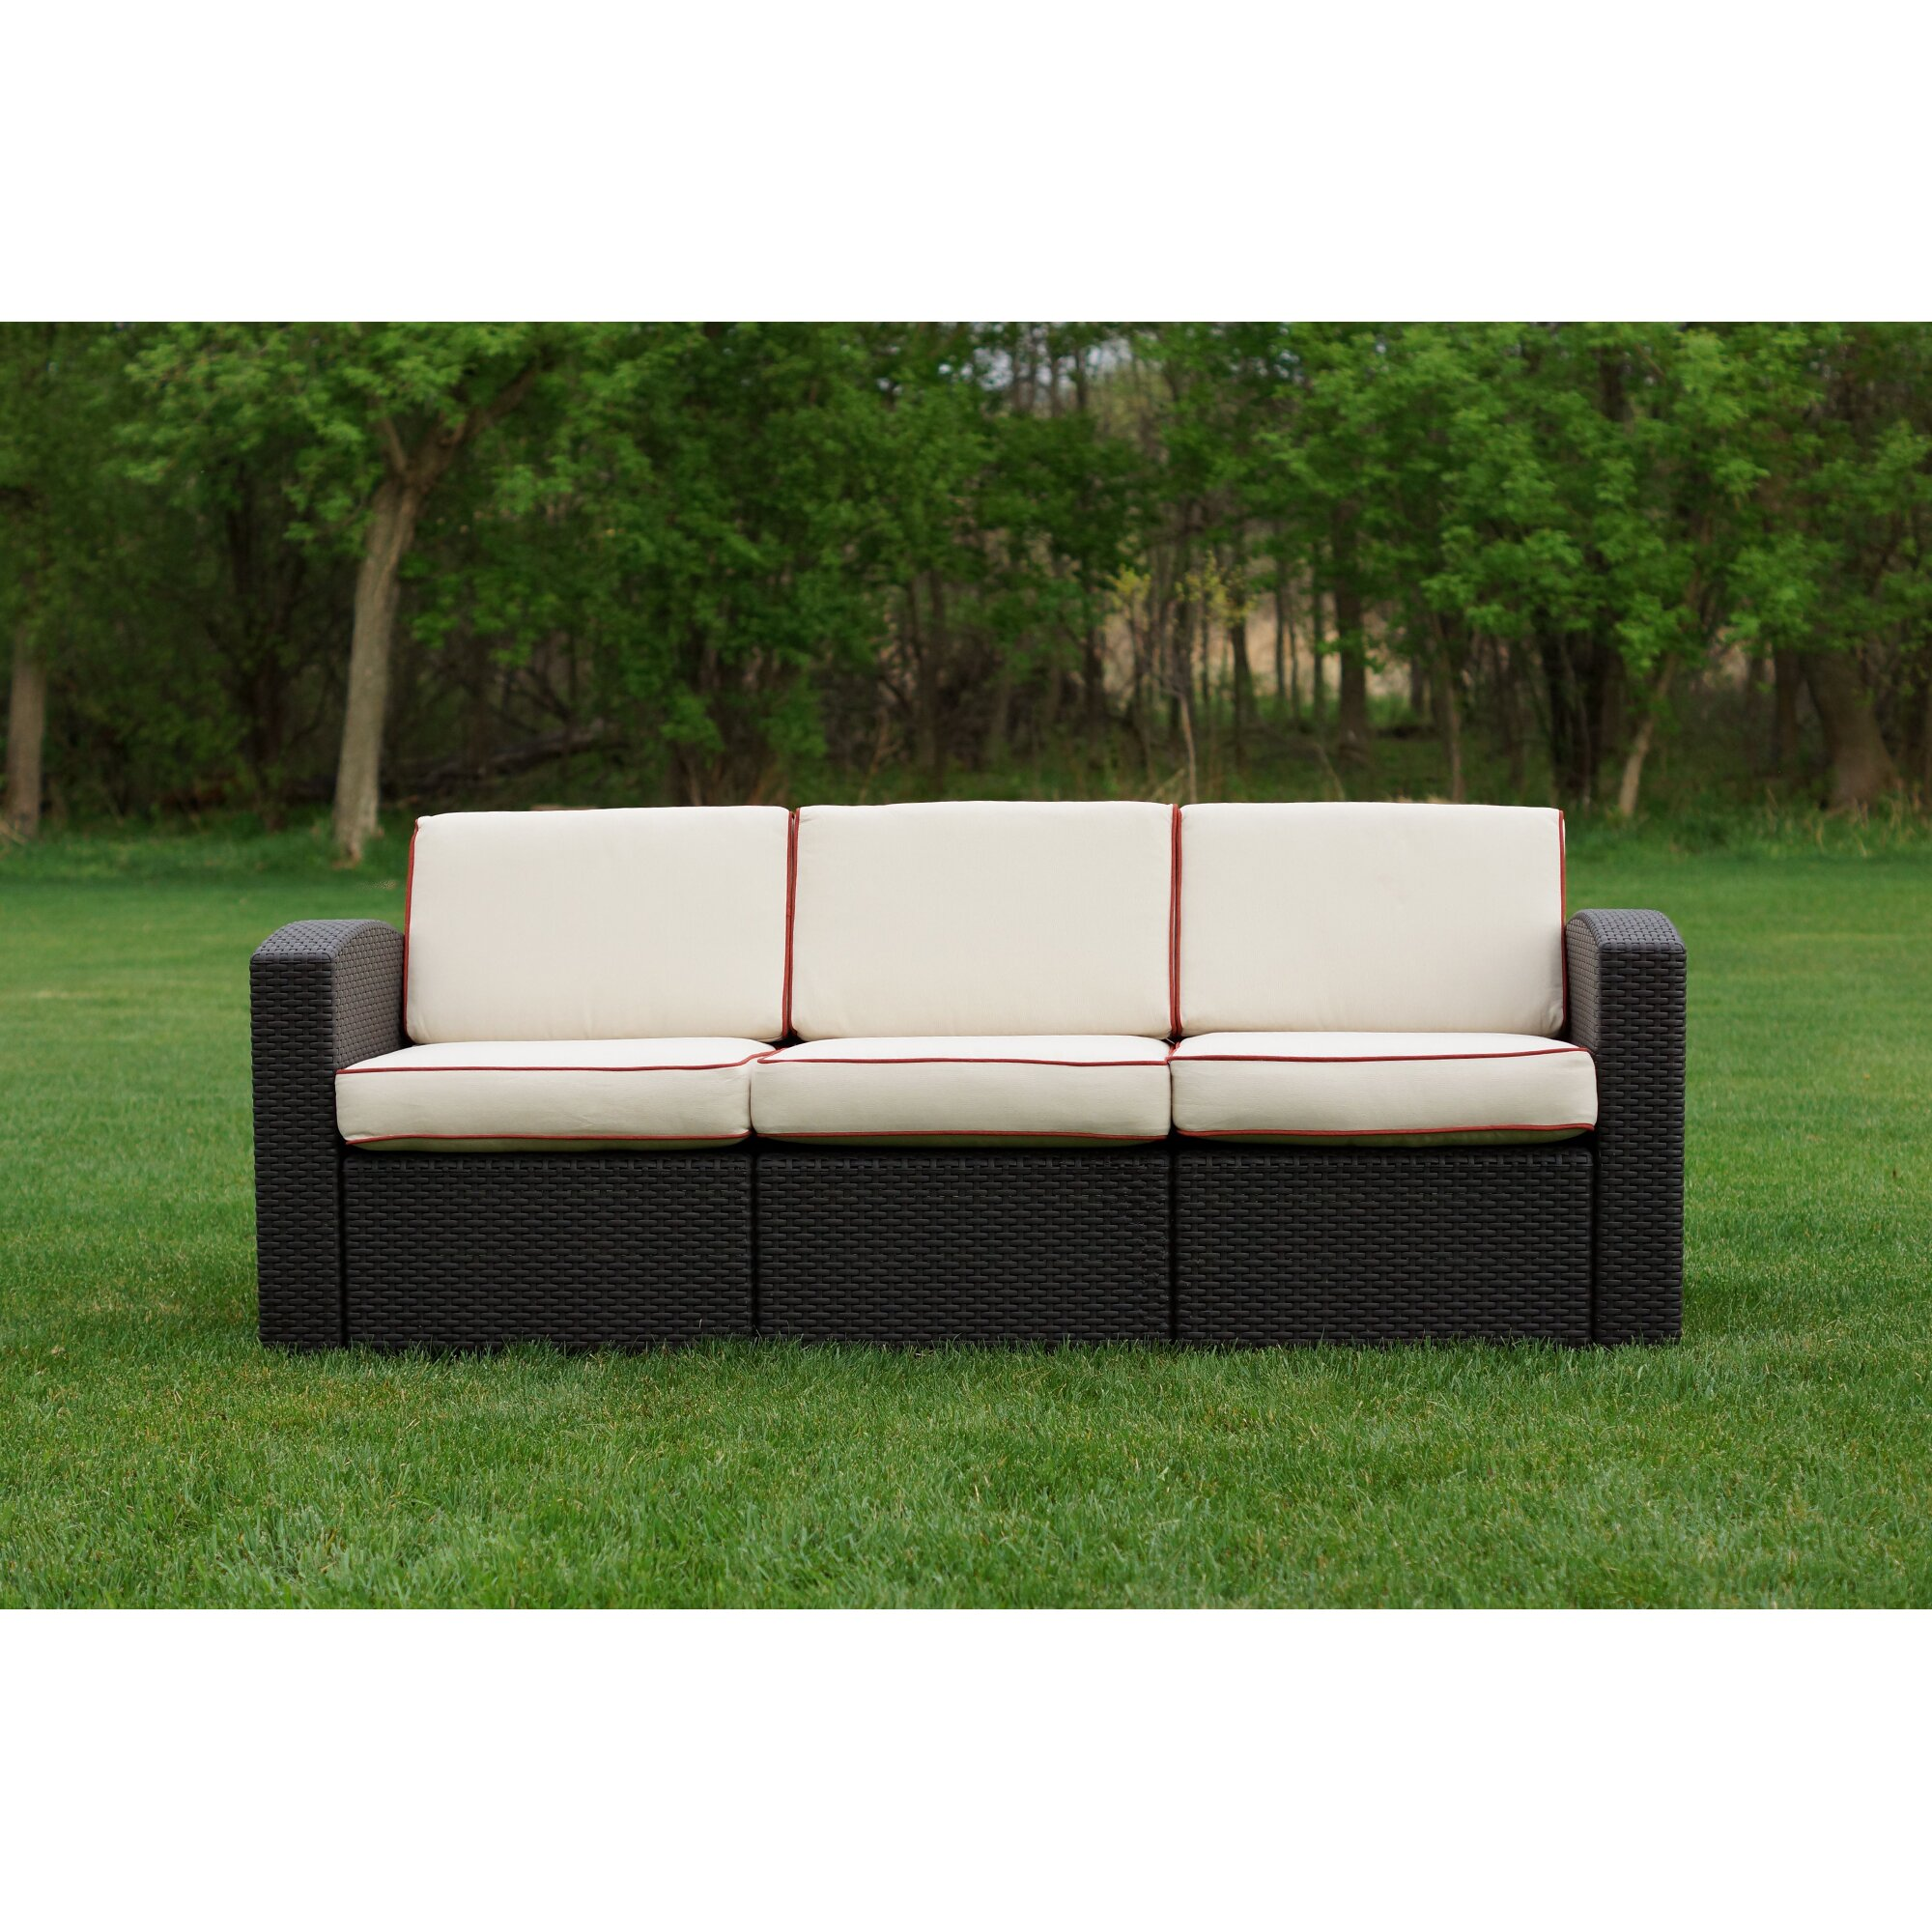 Brayden studio loggins patio sofa with cushion reviews for Outdoor furniture reviews